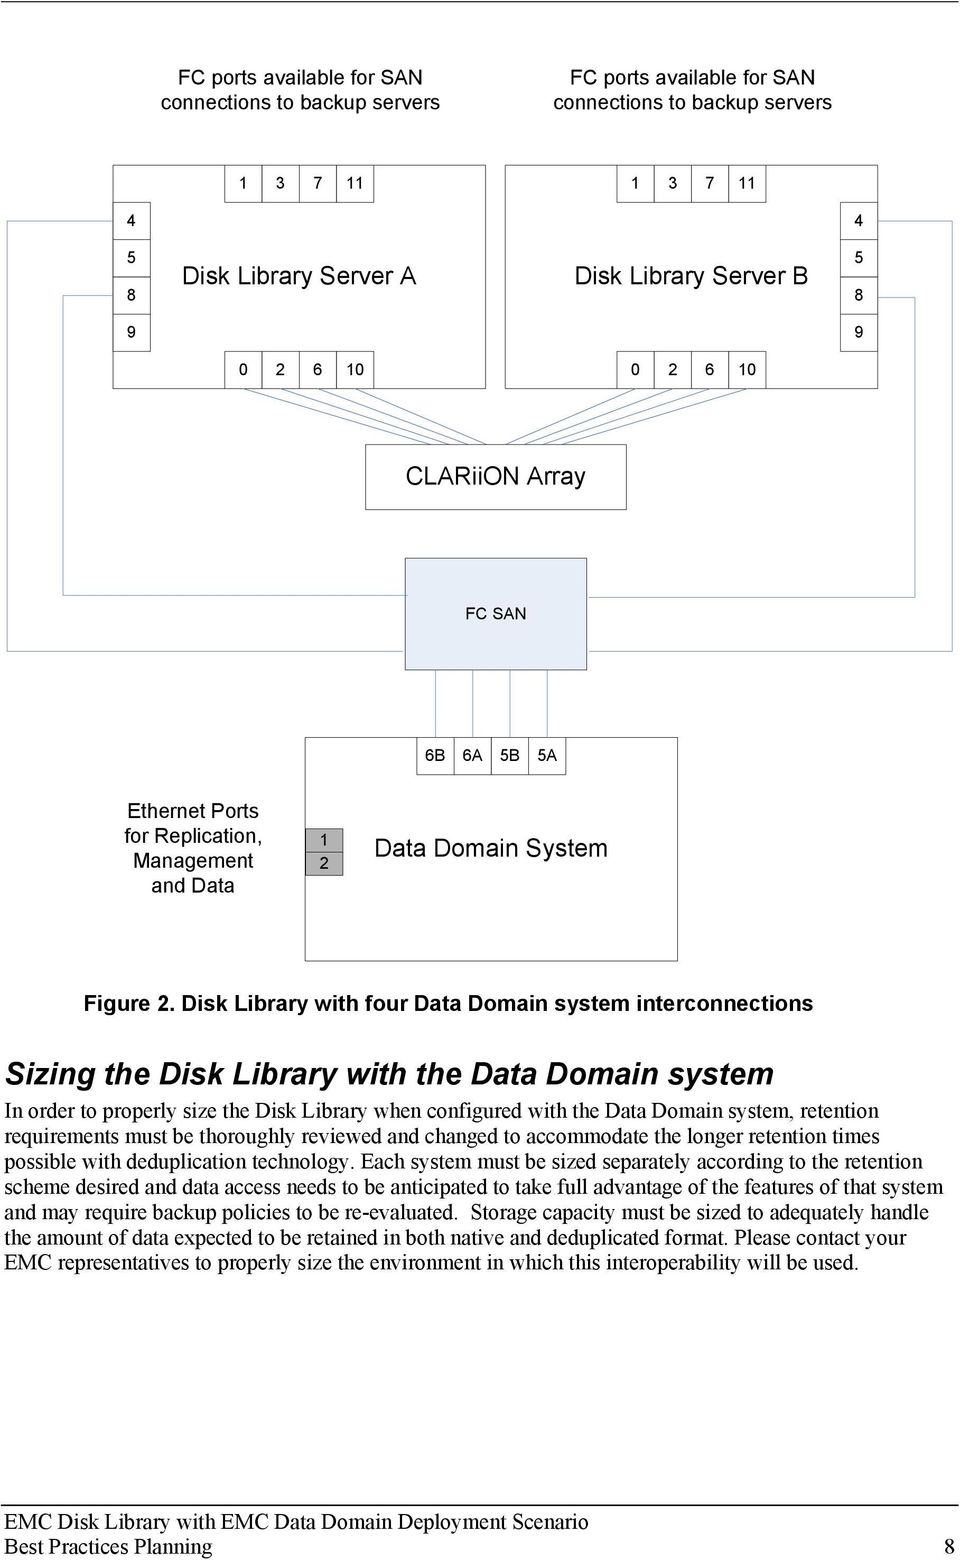 Disk Library with four Data Domain system interconnections Sizing the Disk Library with the Data Domain system In order to properly size the Disk Library when configured with the Data Domain system,